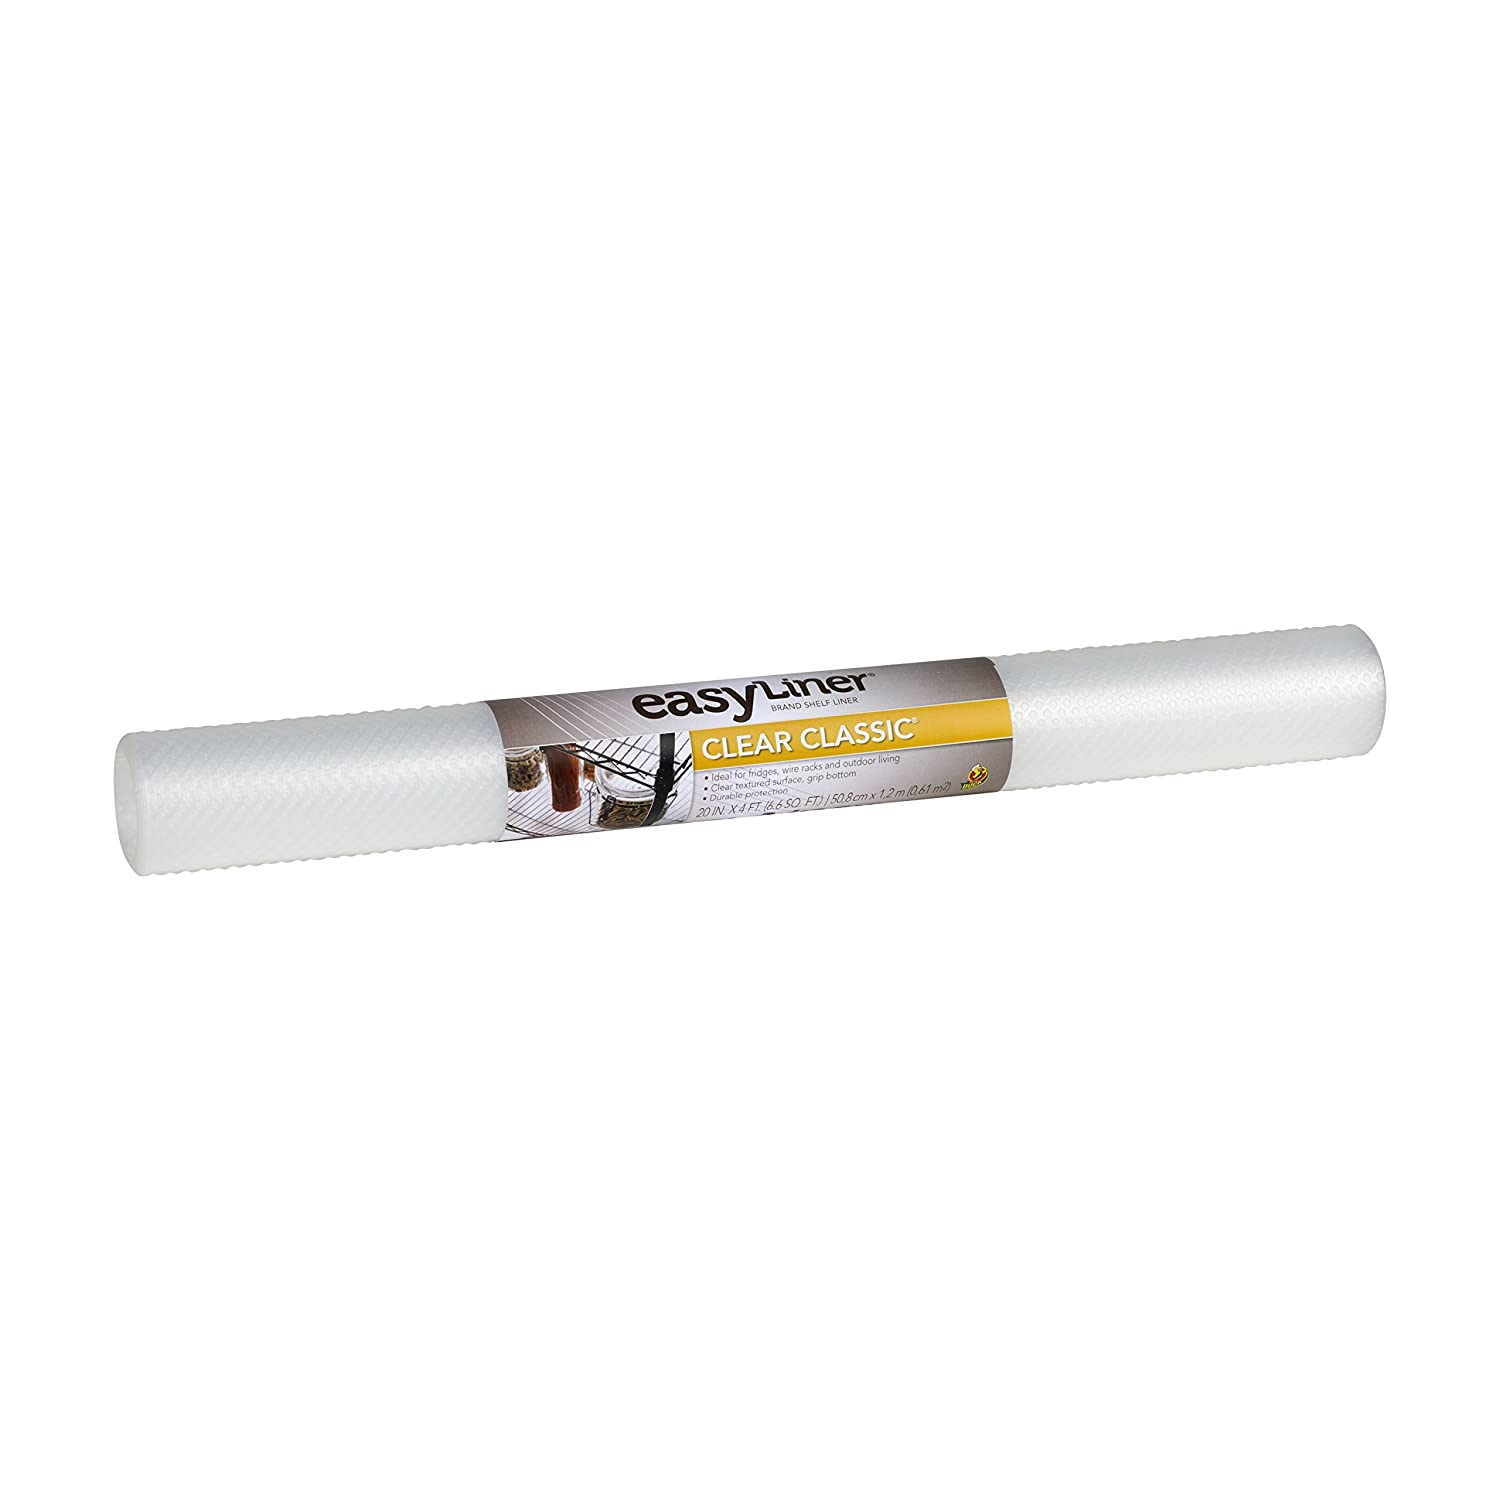 Clear Duck Brand Clear Classic Easy Liner Shelf Liner 280299 20 Inches x 4 Feet Non Adhesive